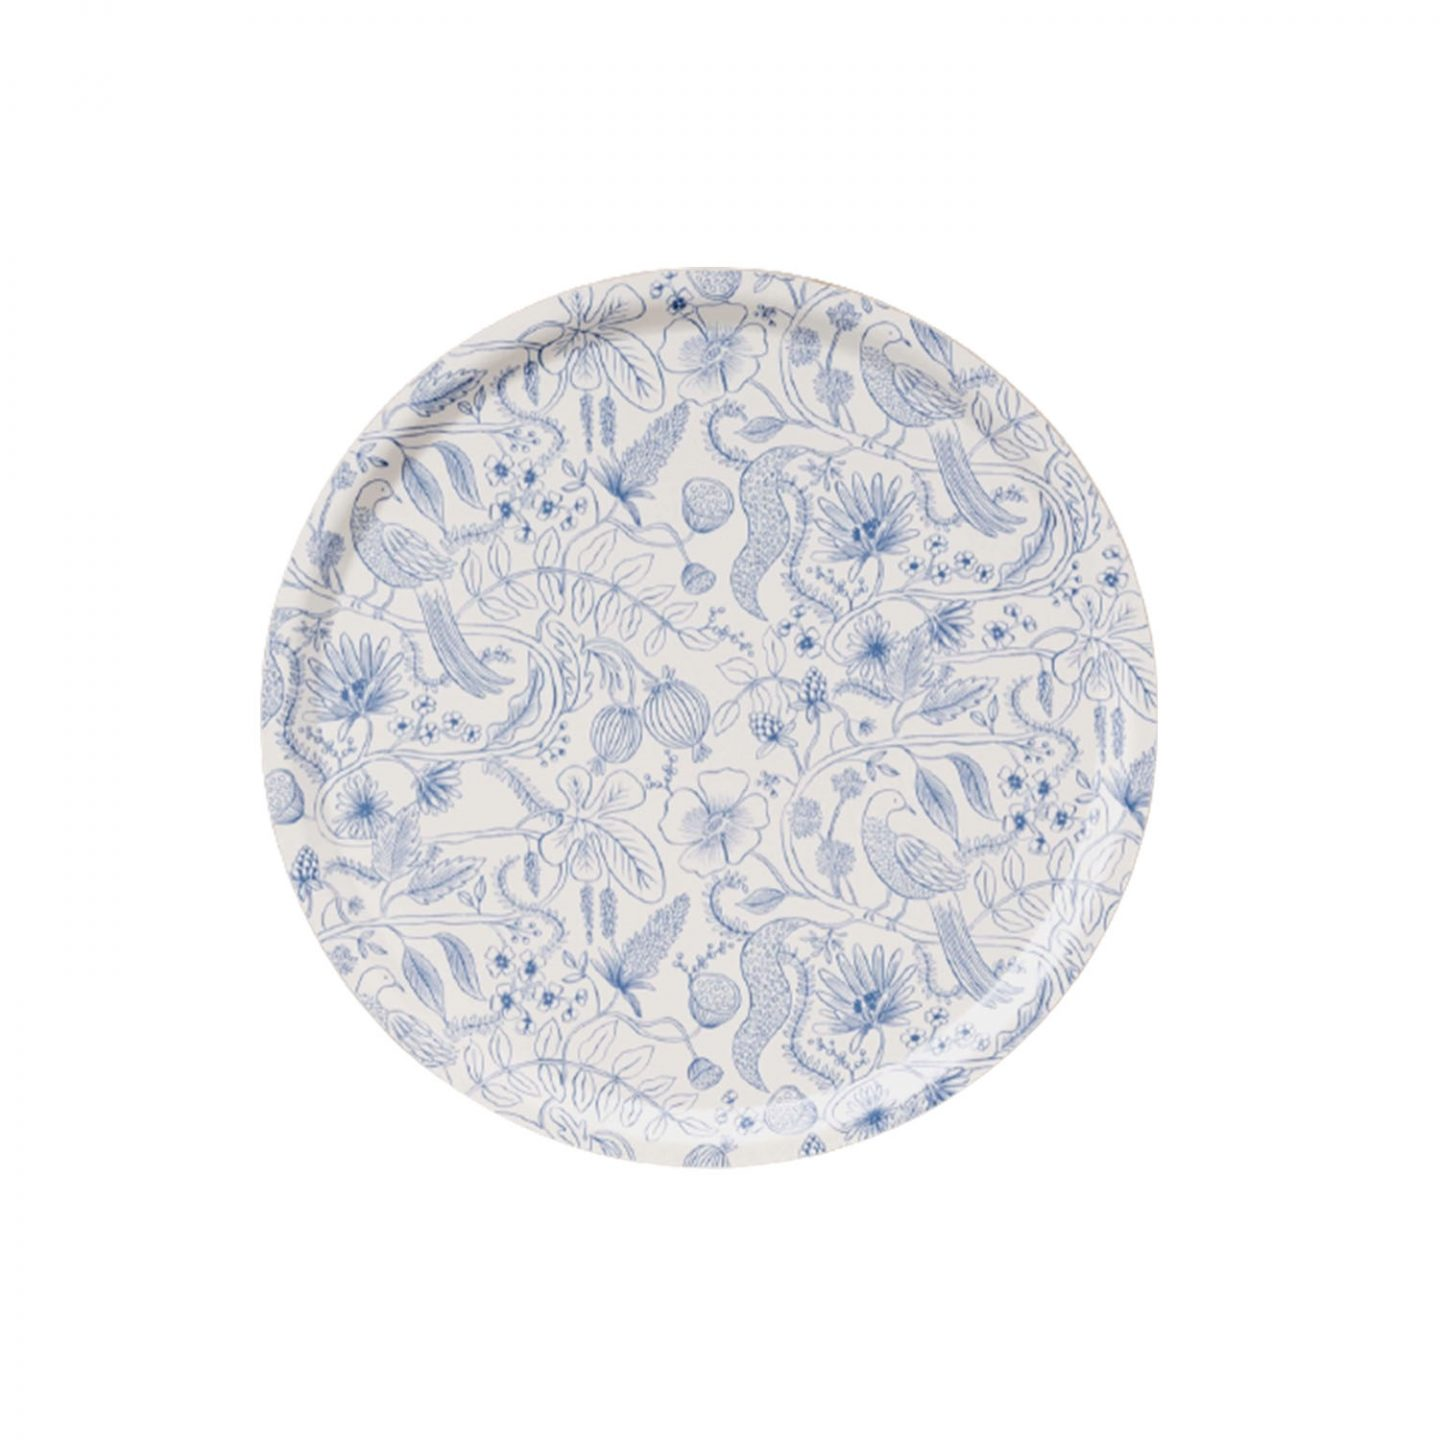 Blue and White Plate | Wednesday Morning Musings | No.164